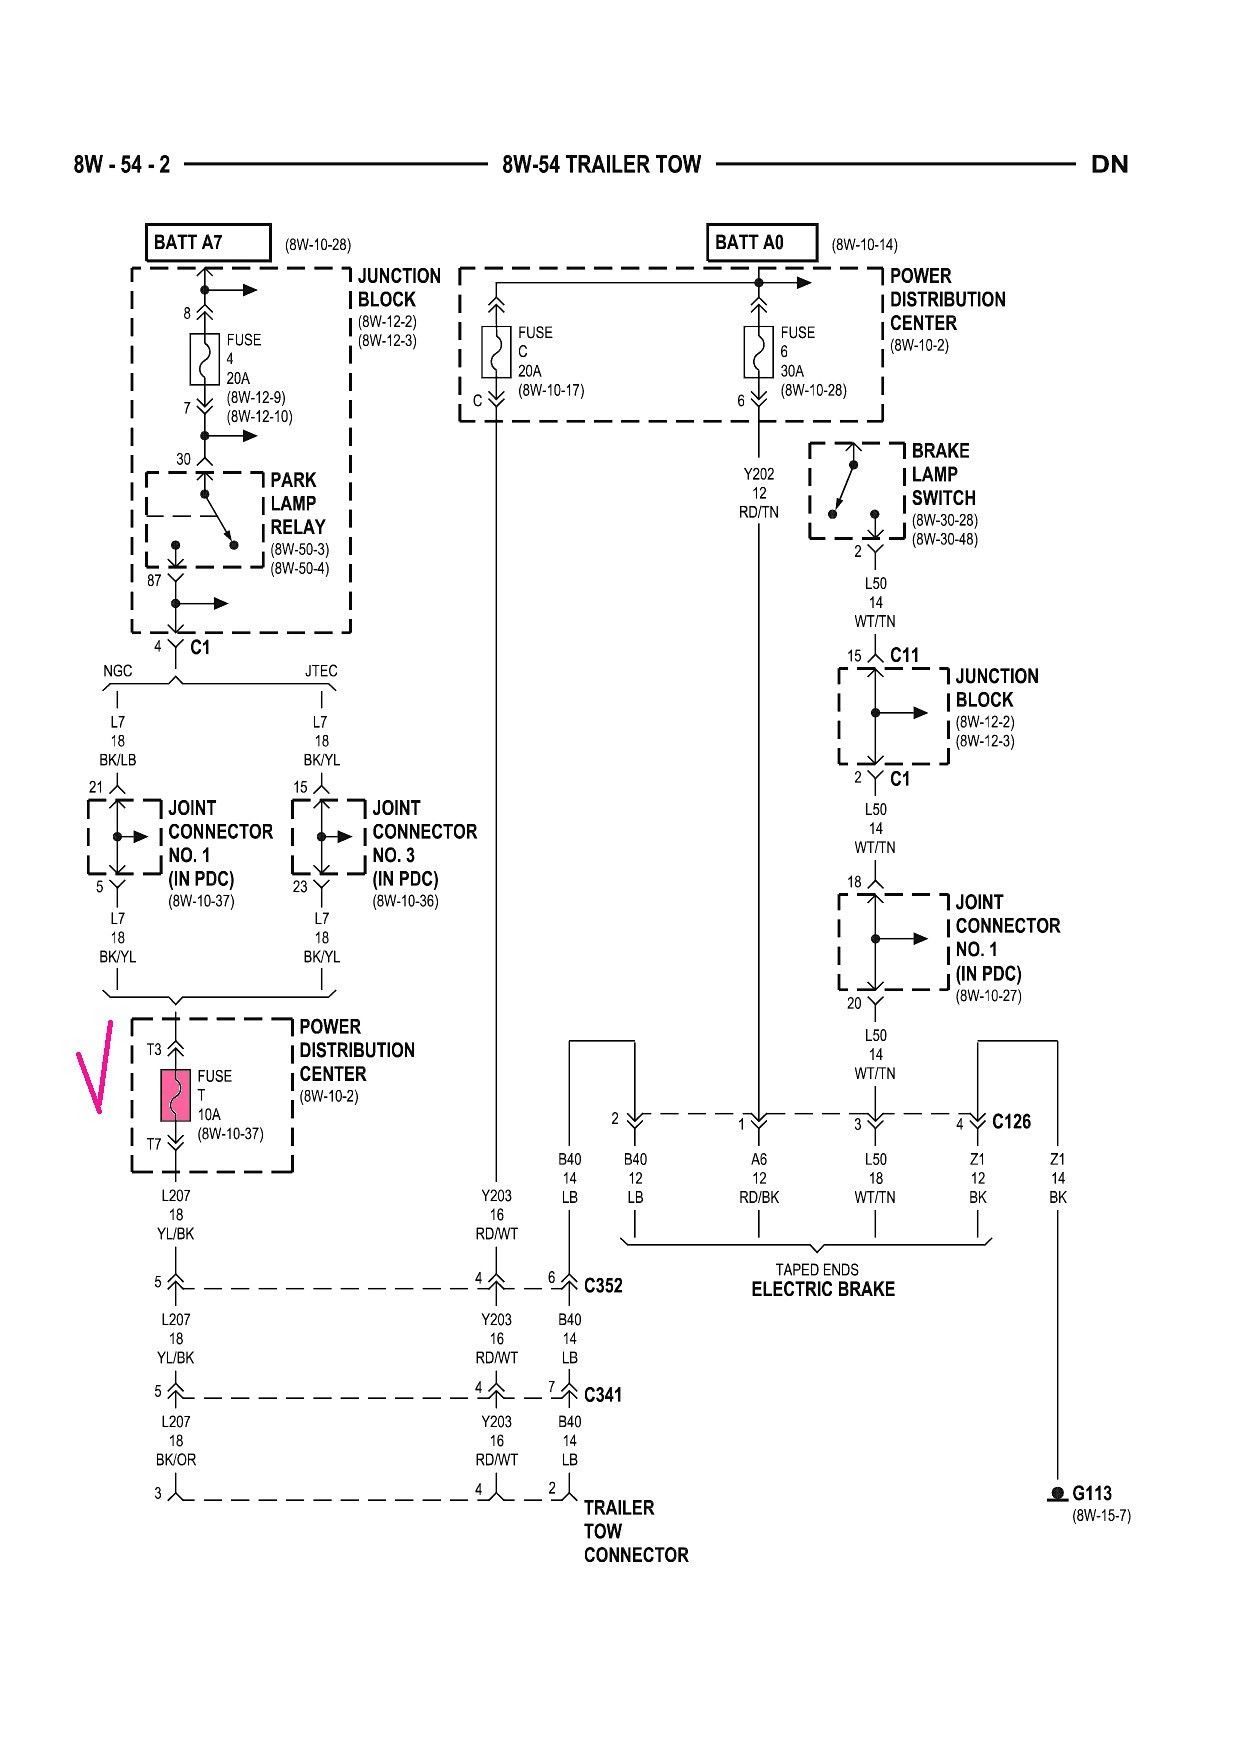 [SCHEMATICS_4HG]  Unique 2007 Dodge Ram 1500 Headlight Wiring Diagram #diagram #diagramsample  #diagramtemplate #wiringdiagram #diagramchart #wo… | Dodge dakota, Dodge,  Dodge ram 1500 | 2007 Dodge Dakota Wiring Diagram |  | Pinterest